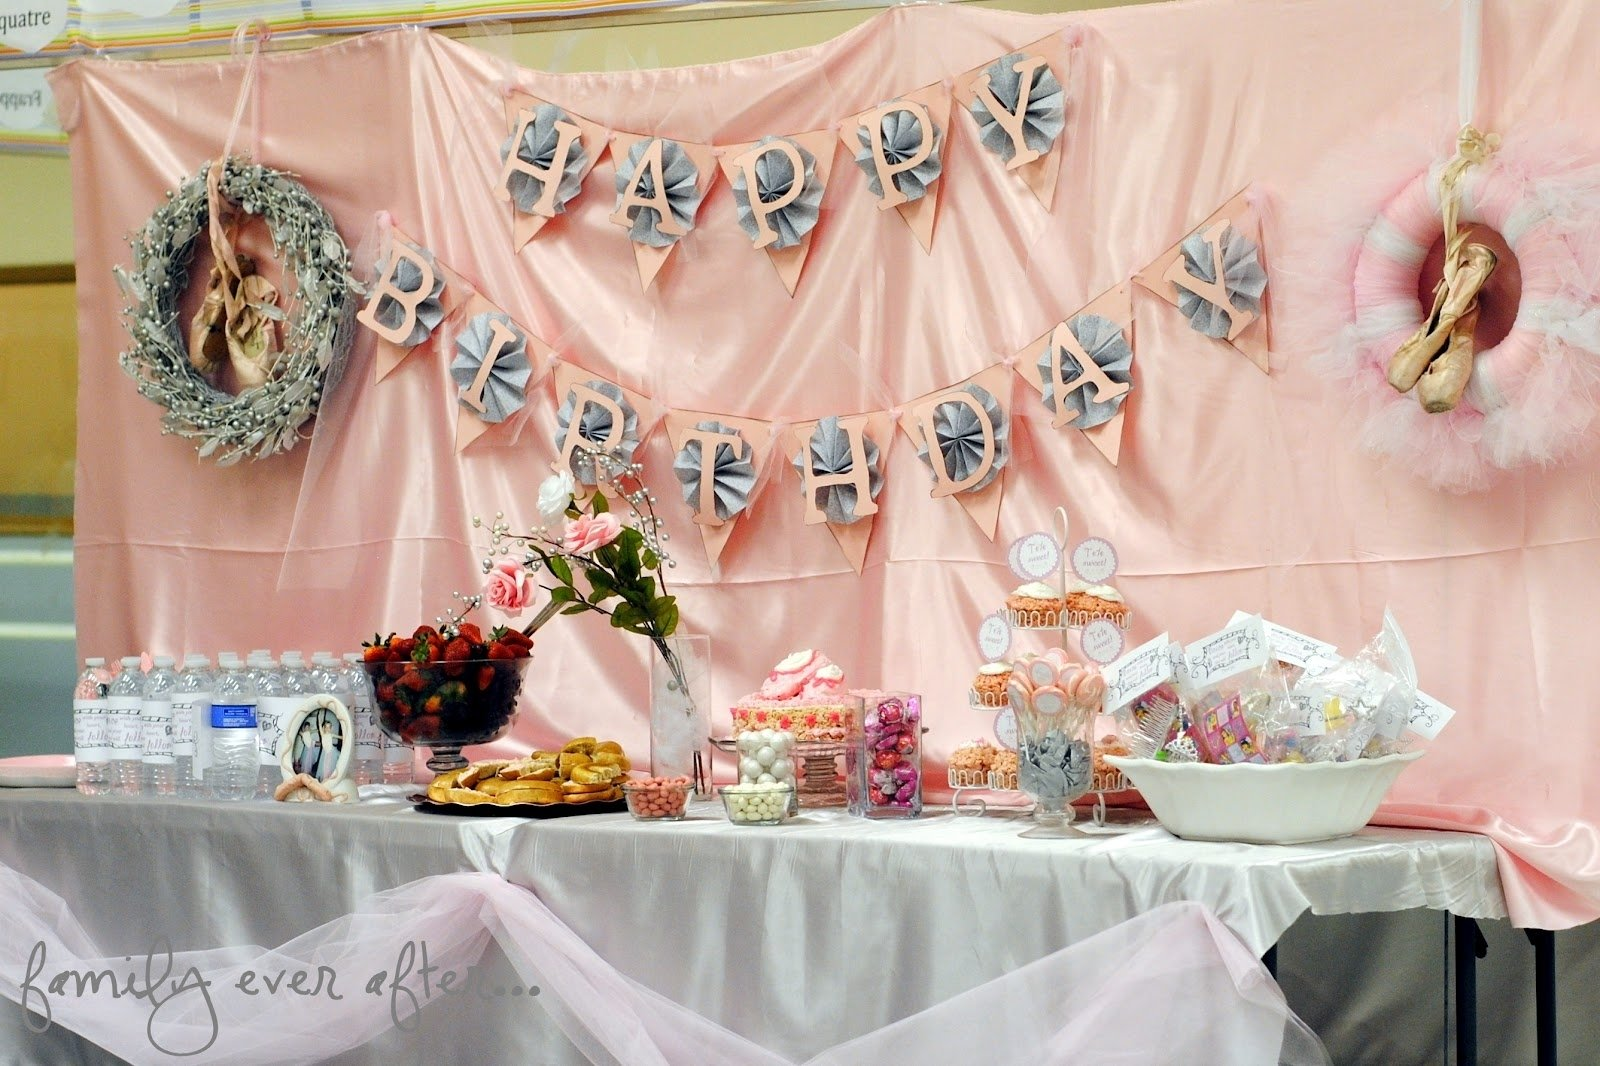 10 Beautiful Birthday Ideas For Teenage Girls 50 birthday party themes for girls i heart nap time 42